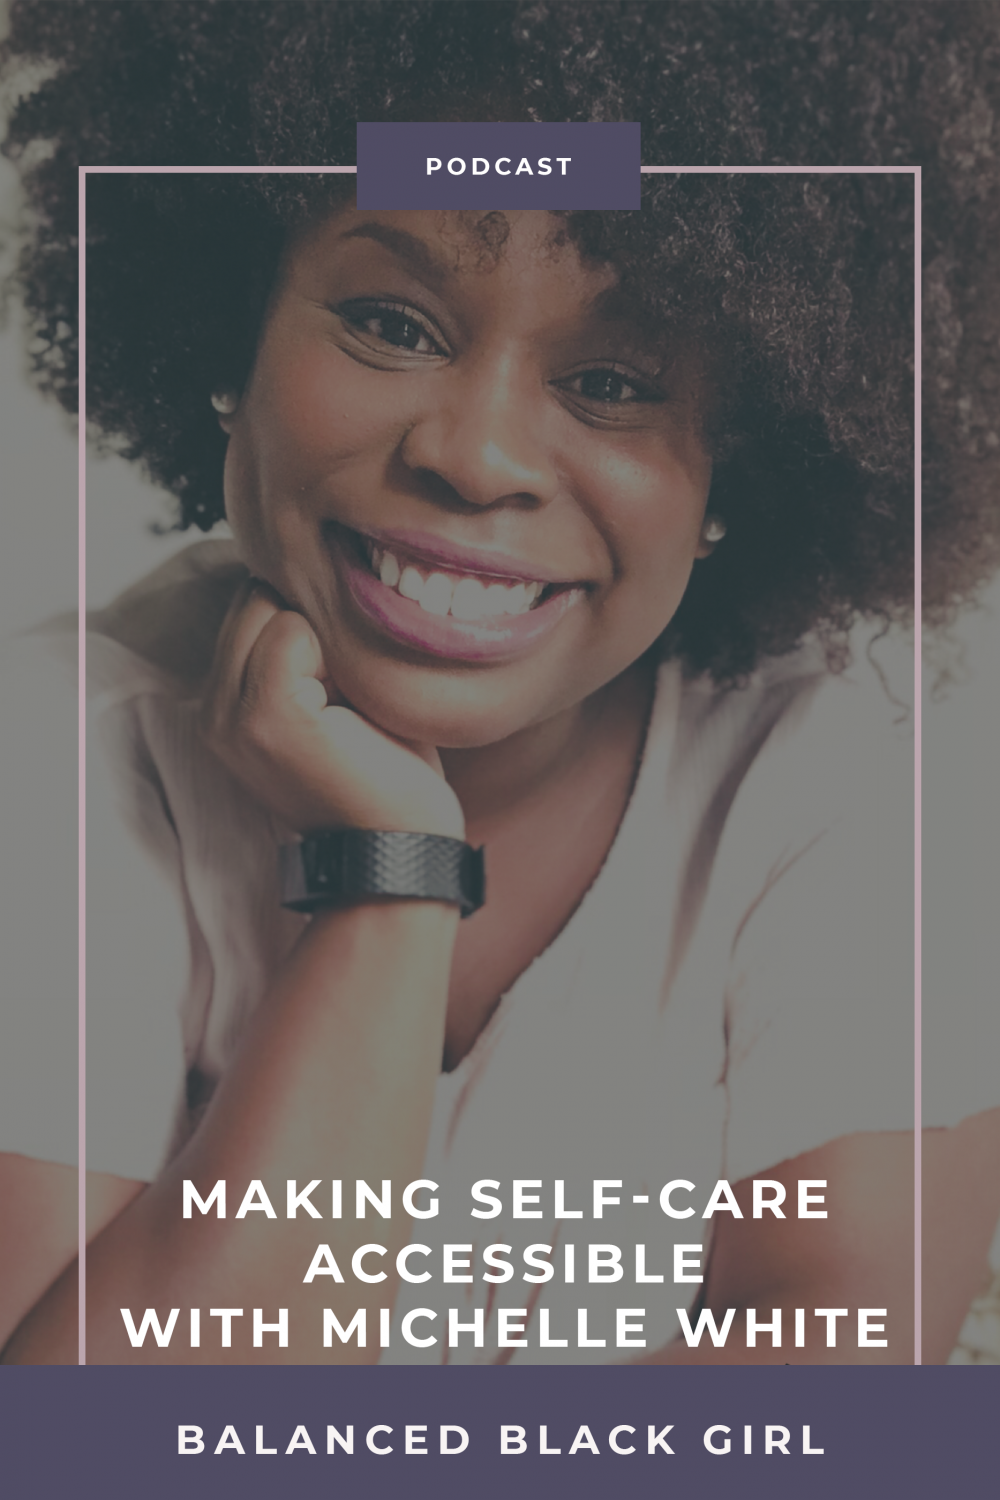 Episode 19: Making Self-Care Accessible with Michelle White